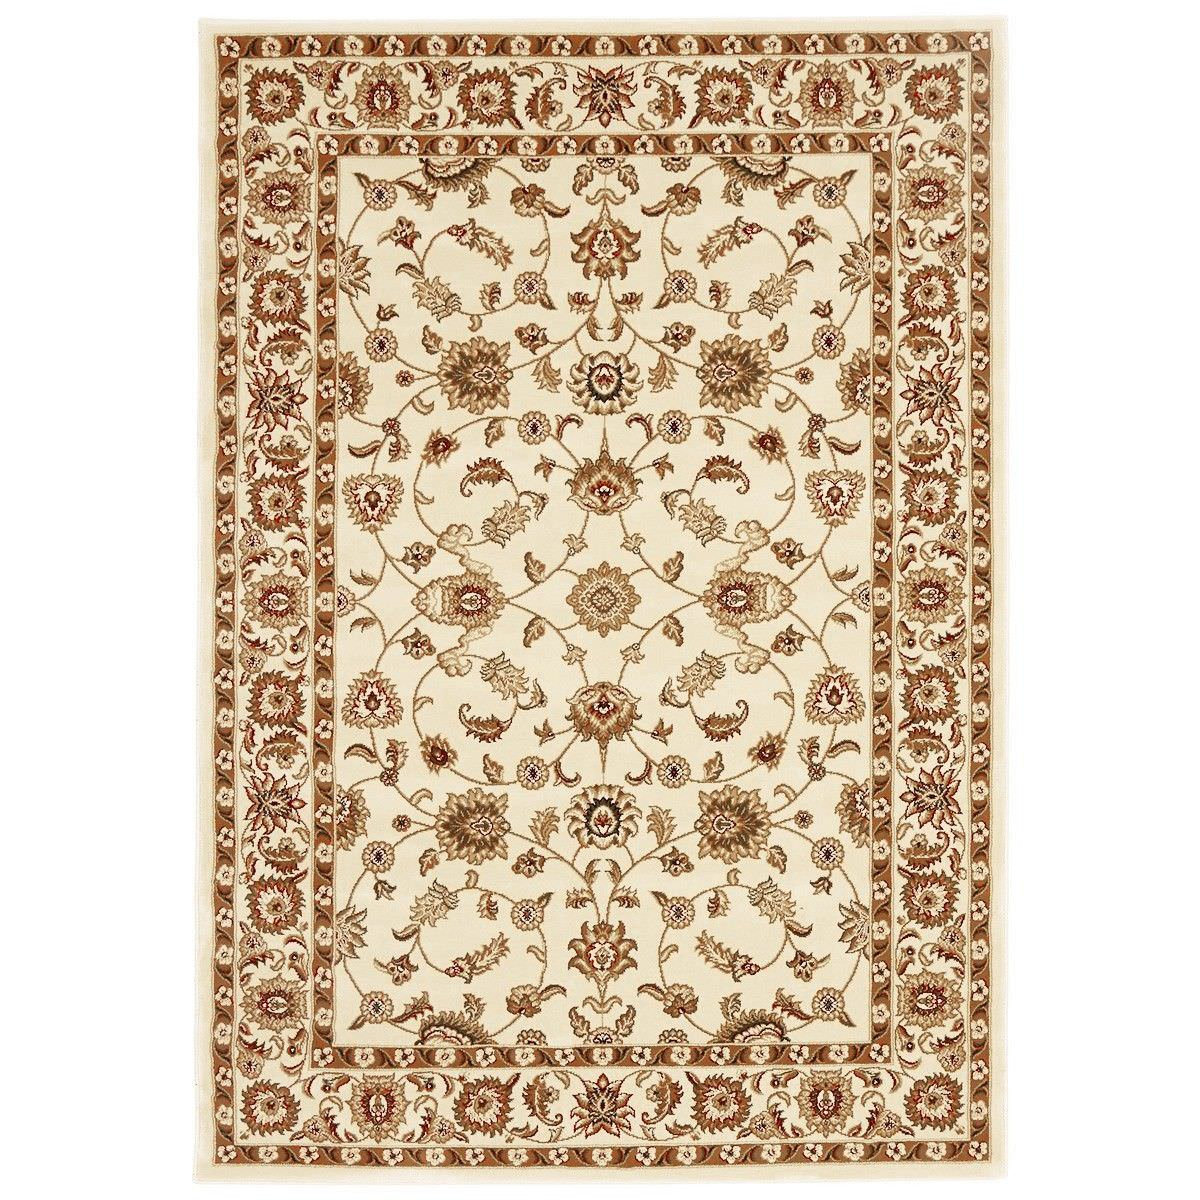 Sydney Classic Turkish Made Oriental Rug, 400x300cm, Ivory